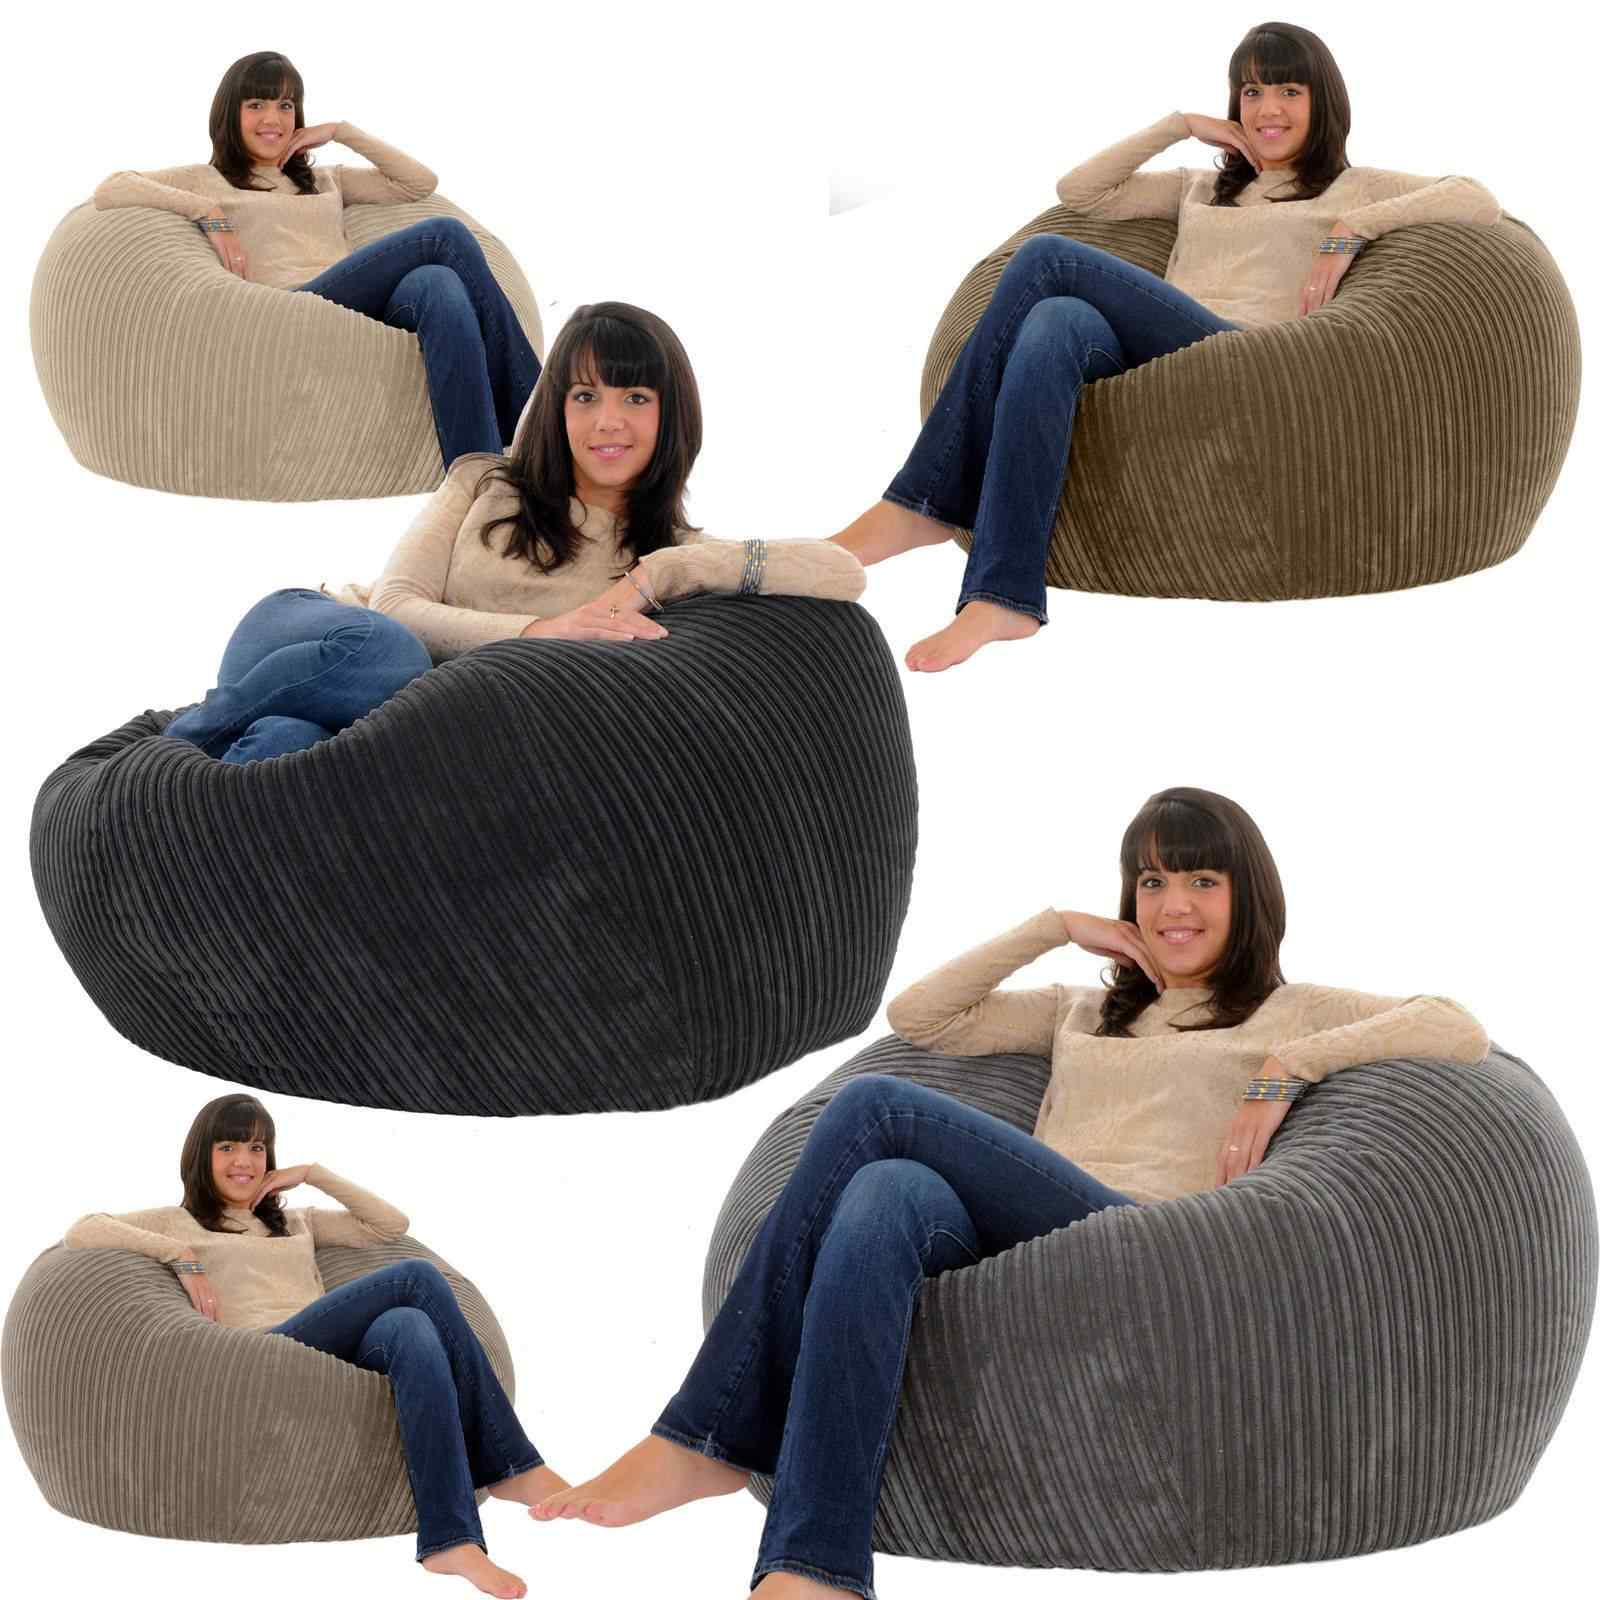 Large Lazy BeanBag Sofas Cover Chairs without Filler  Corduroy Lounger Seat Bean Bag Pouf Puff Couch Tatami Living Room Grey